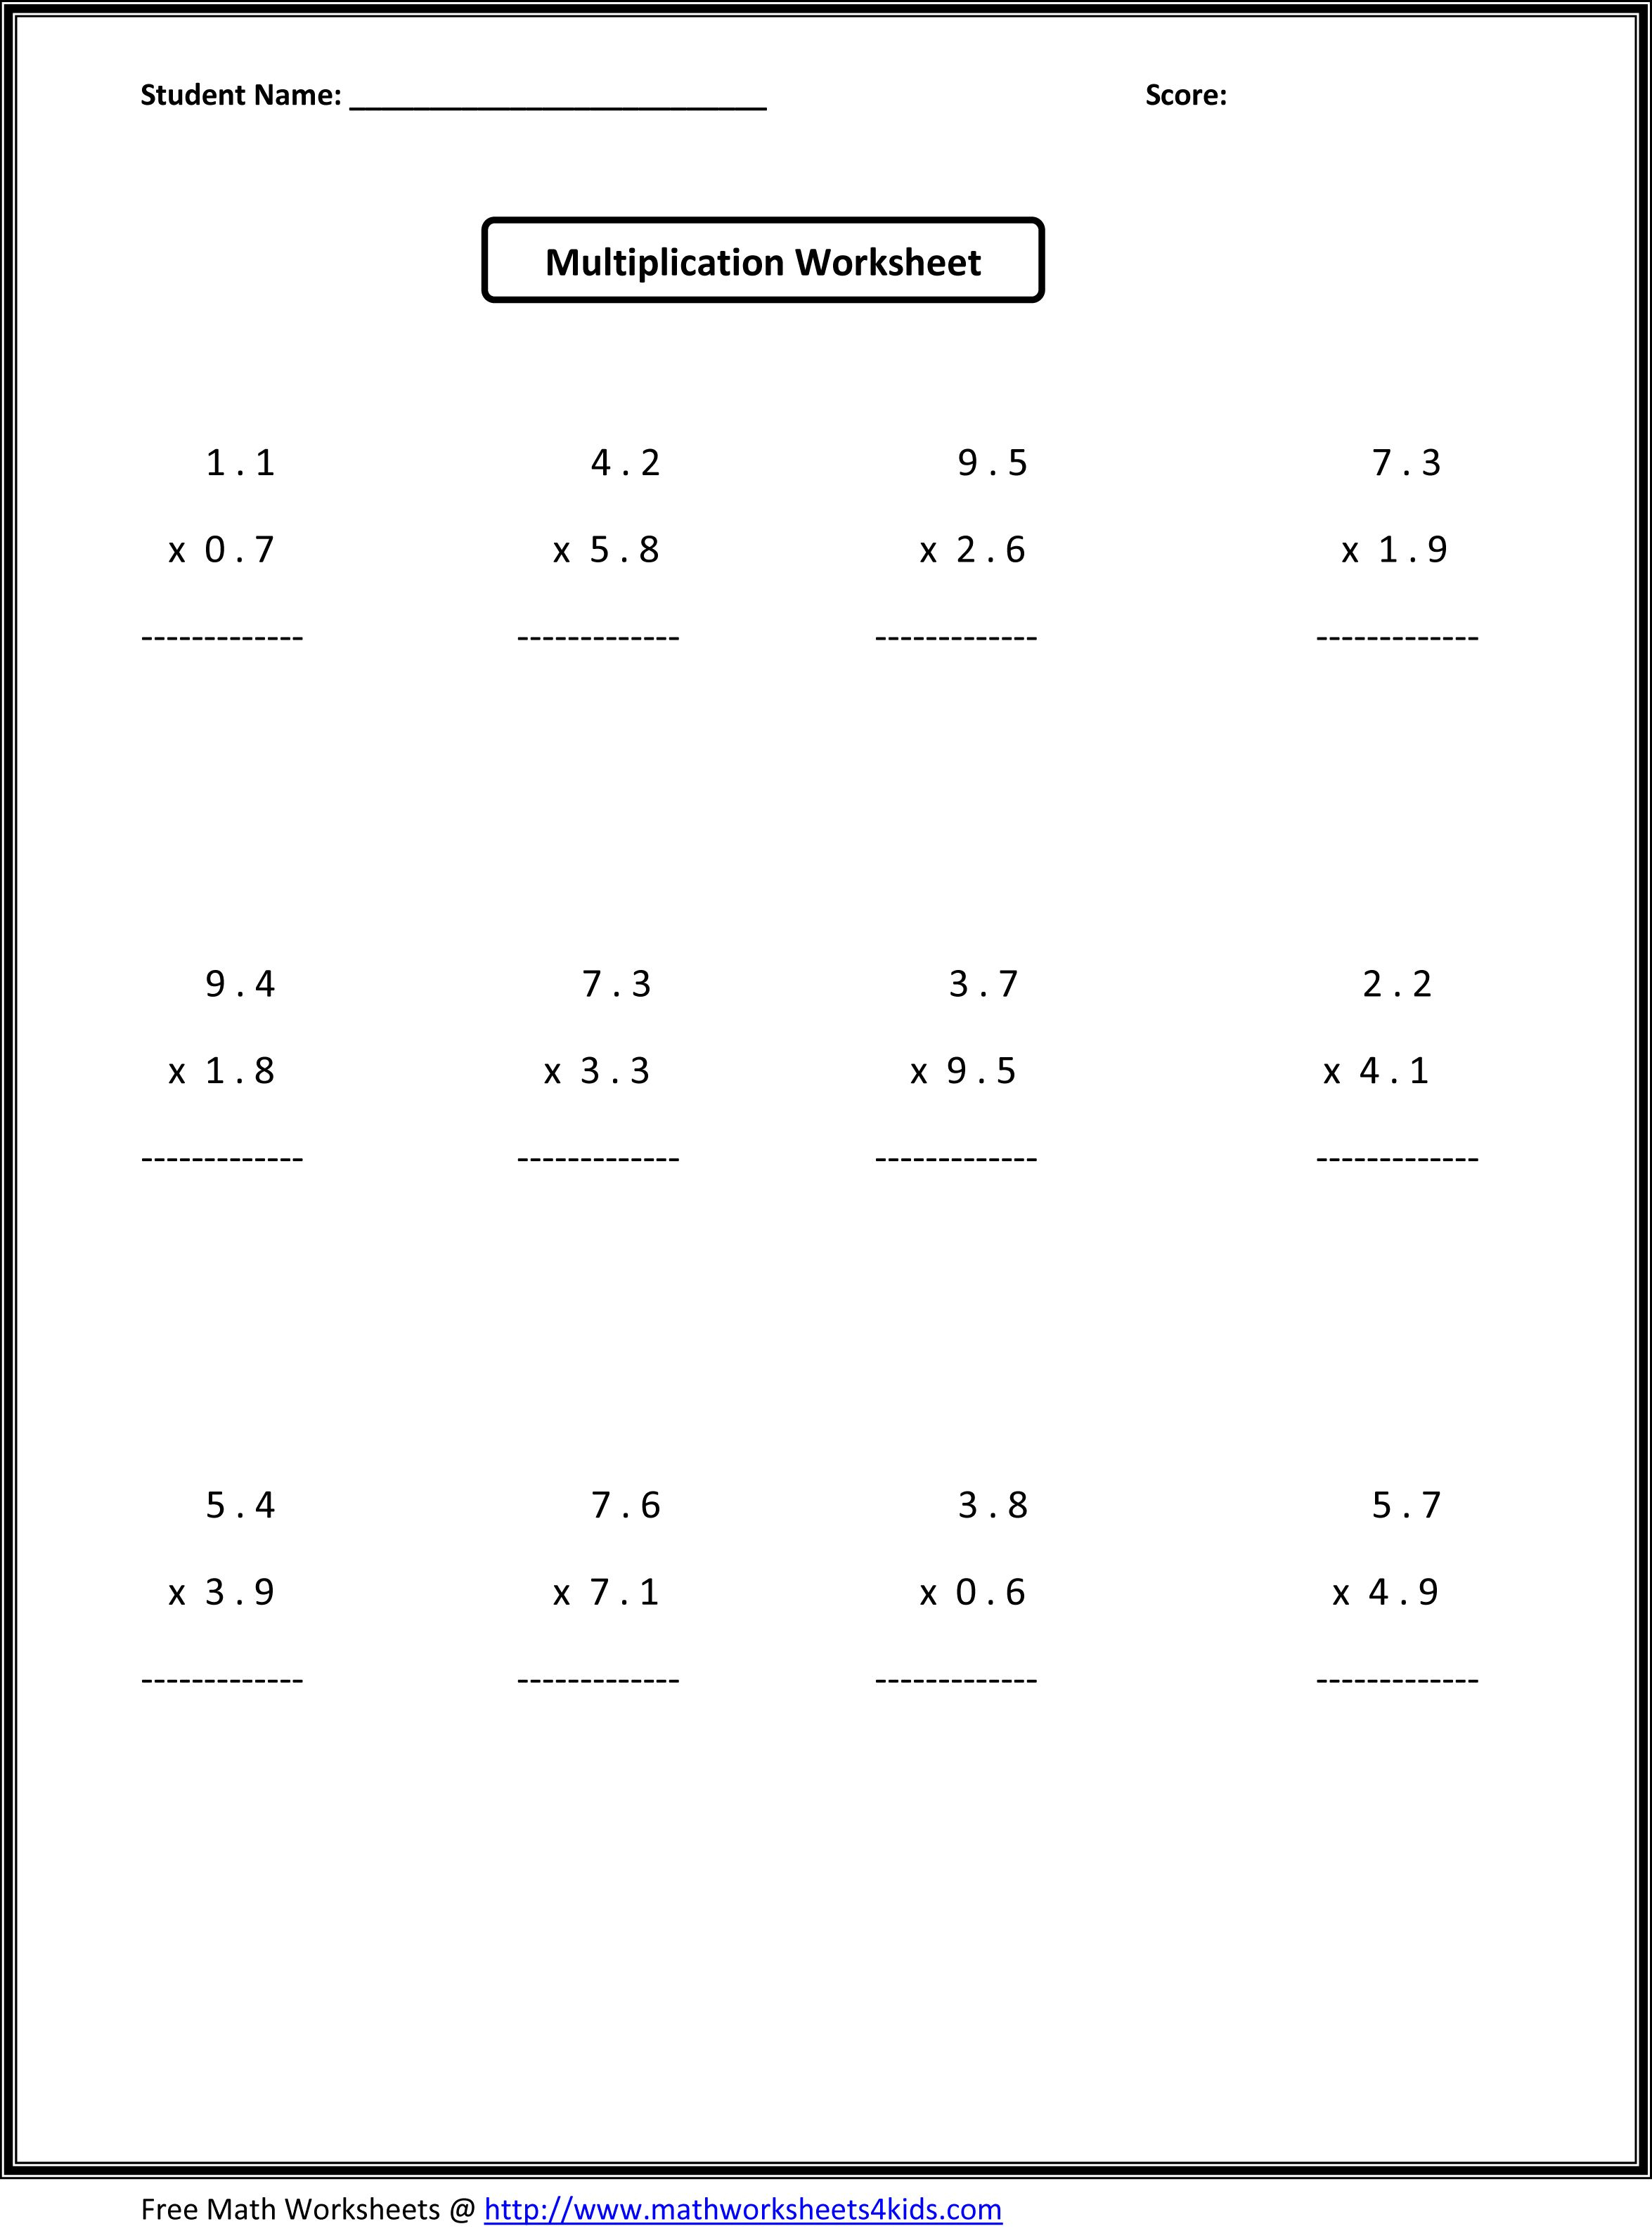 7Th Grade Math Worksheets | Value Worksheets Absolute Value | 7Th Grade Printable Worksheets